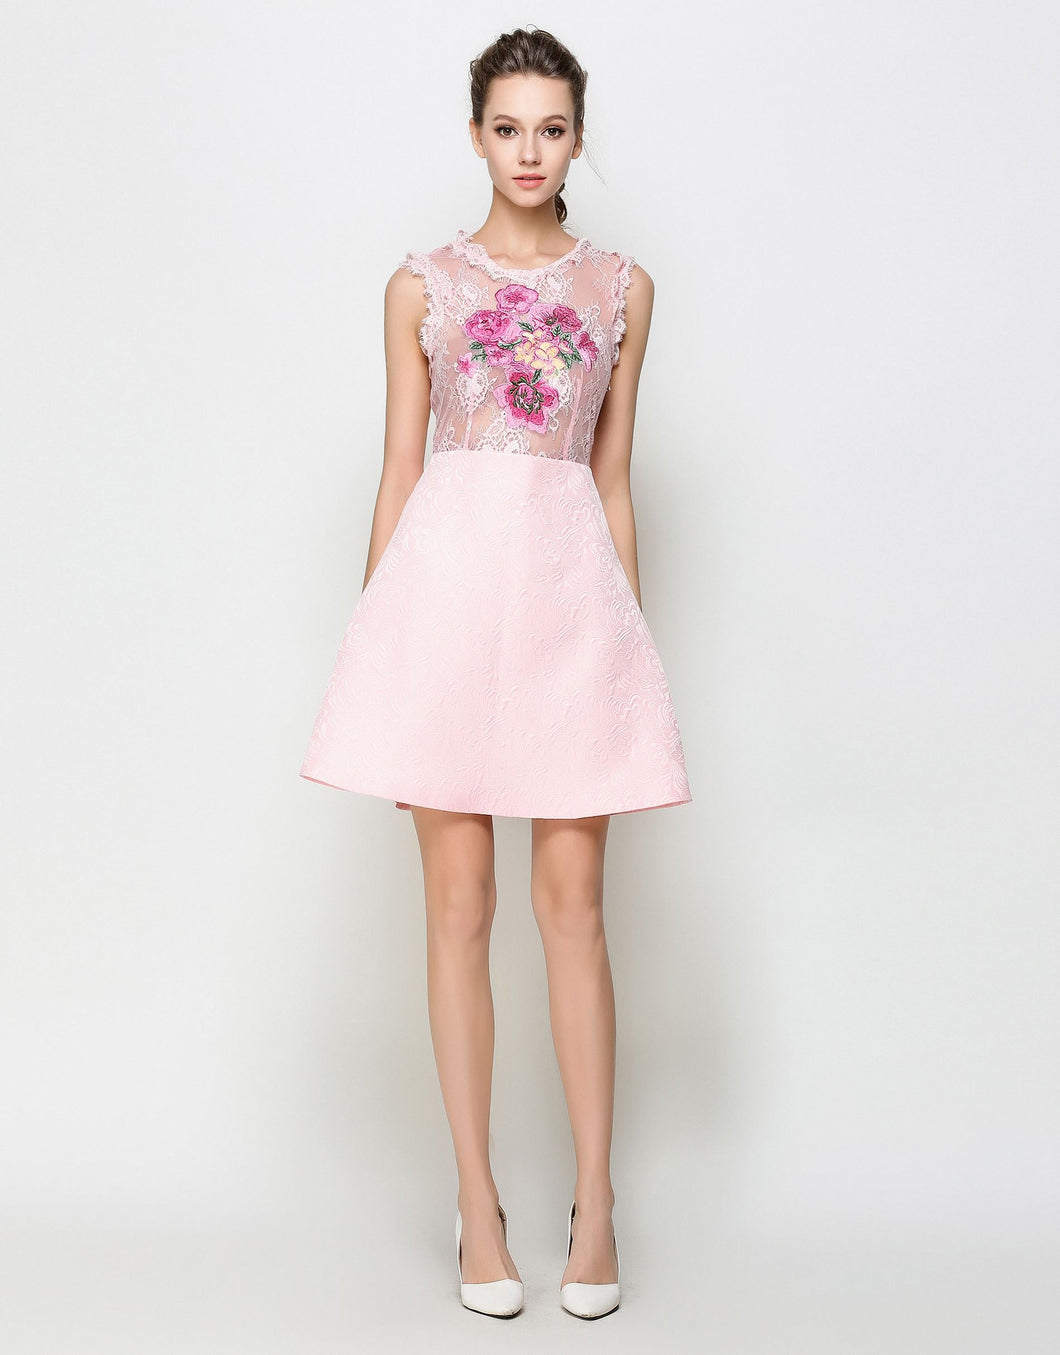 Comino Couture Pink Heavy Embroidered Dress *WAS £155*